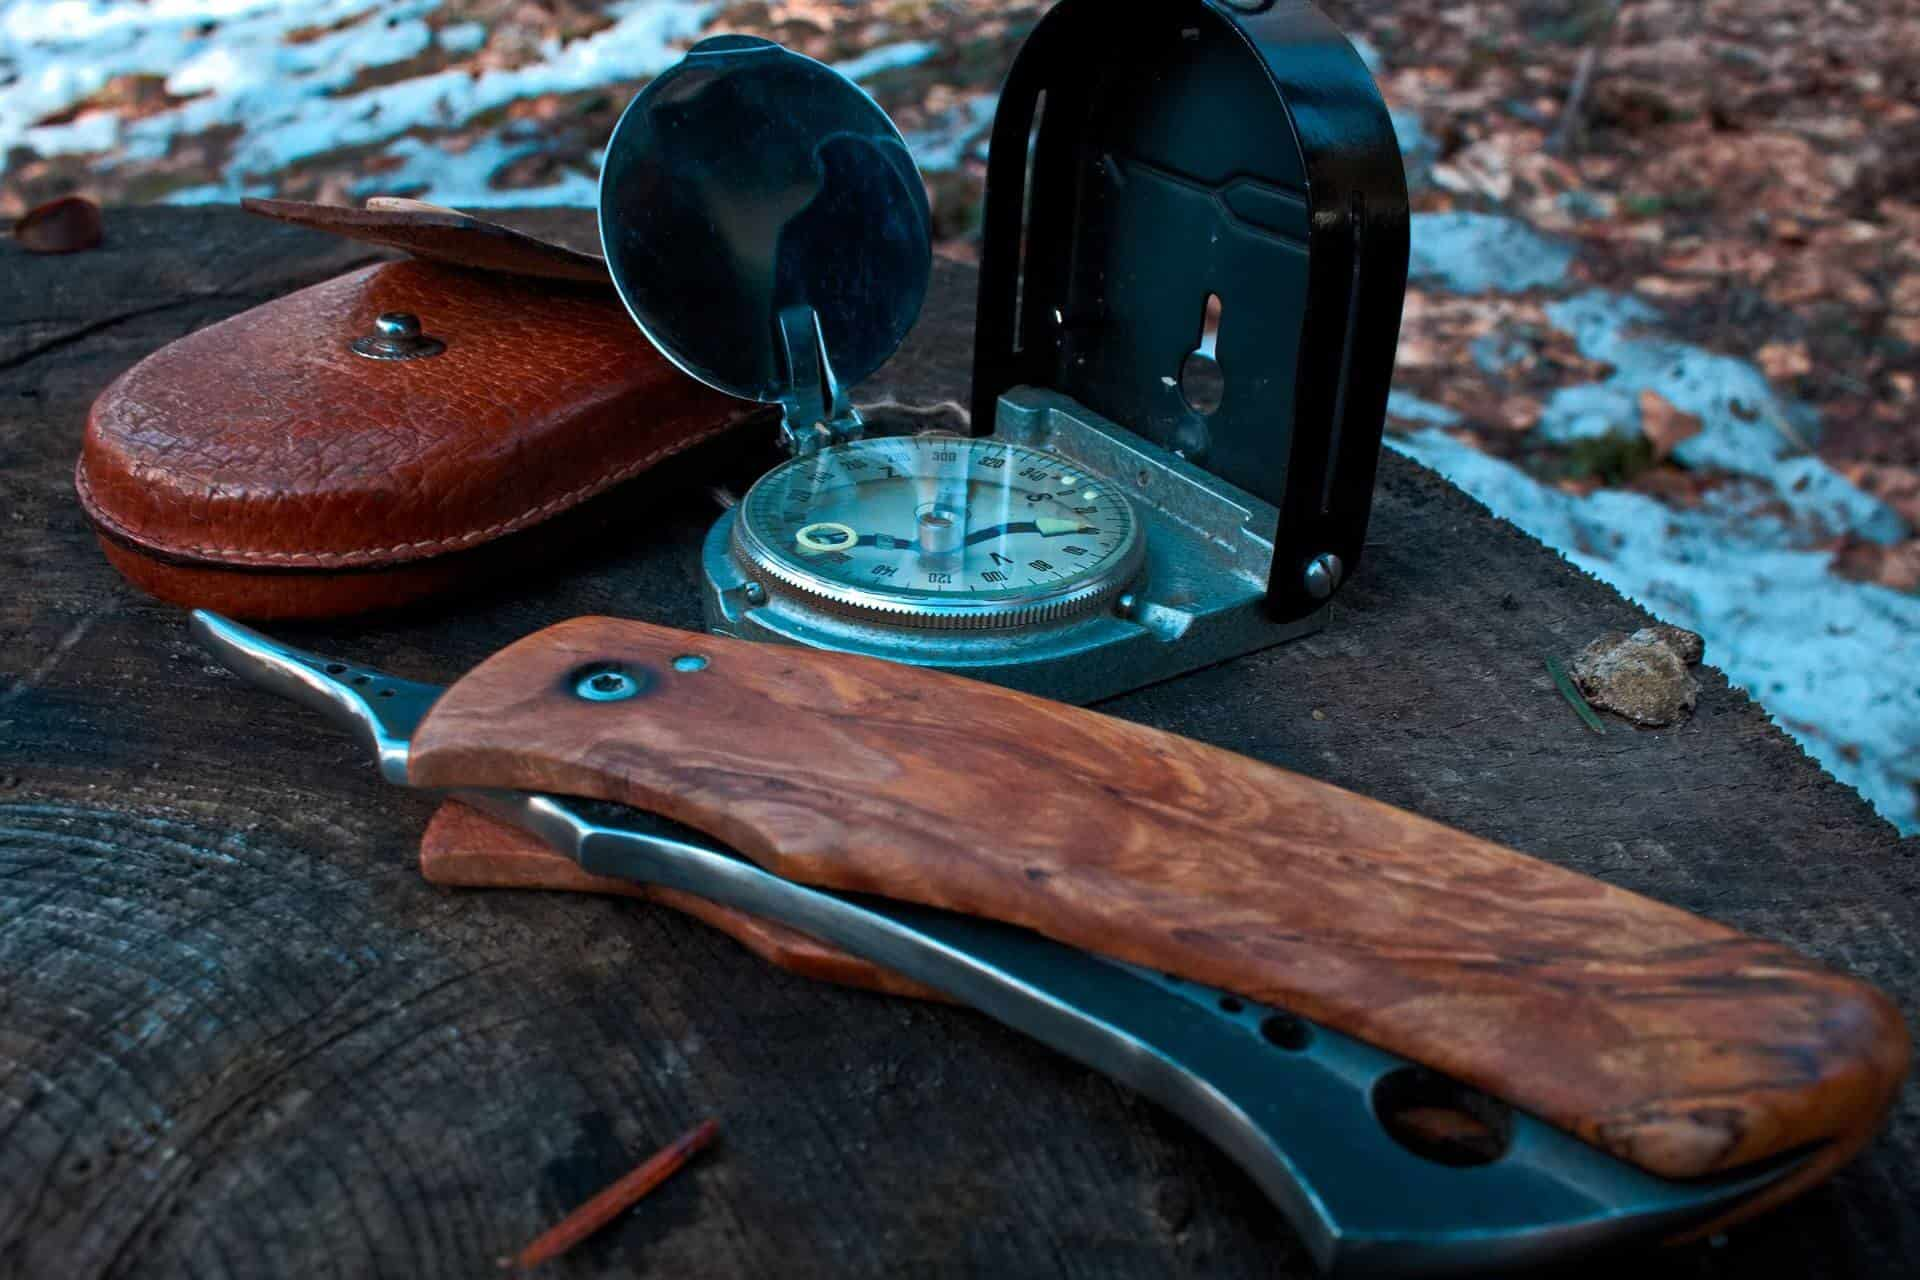 Tools for wilderness survival